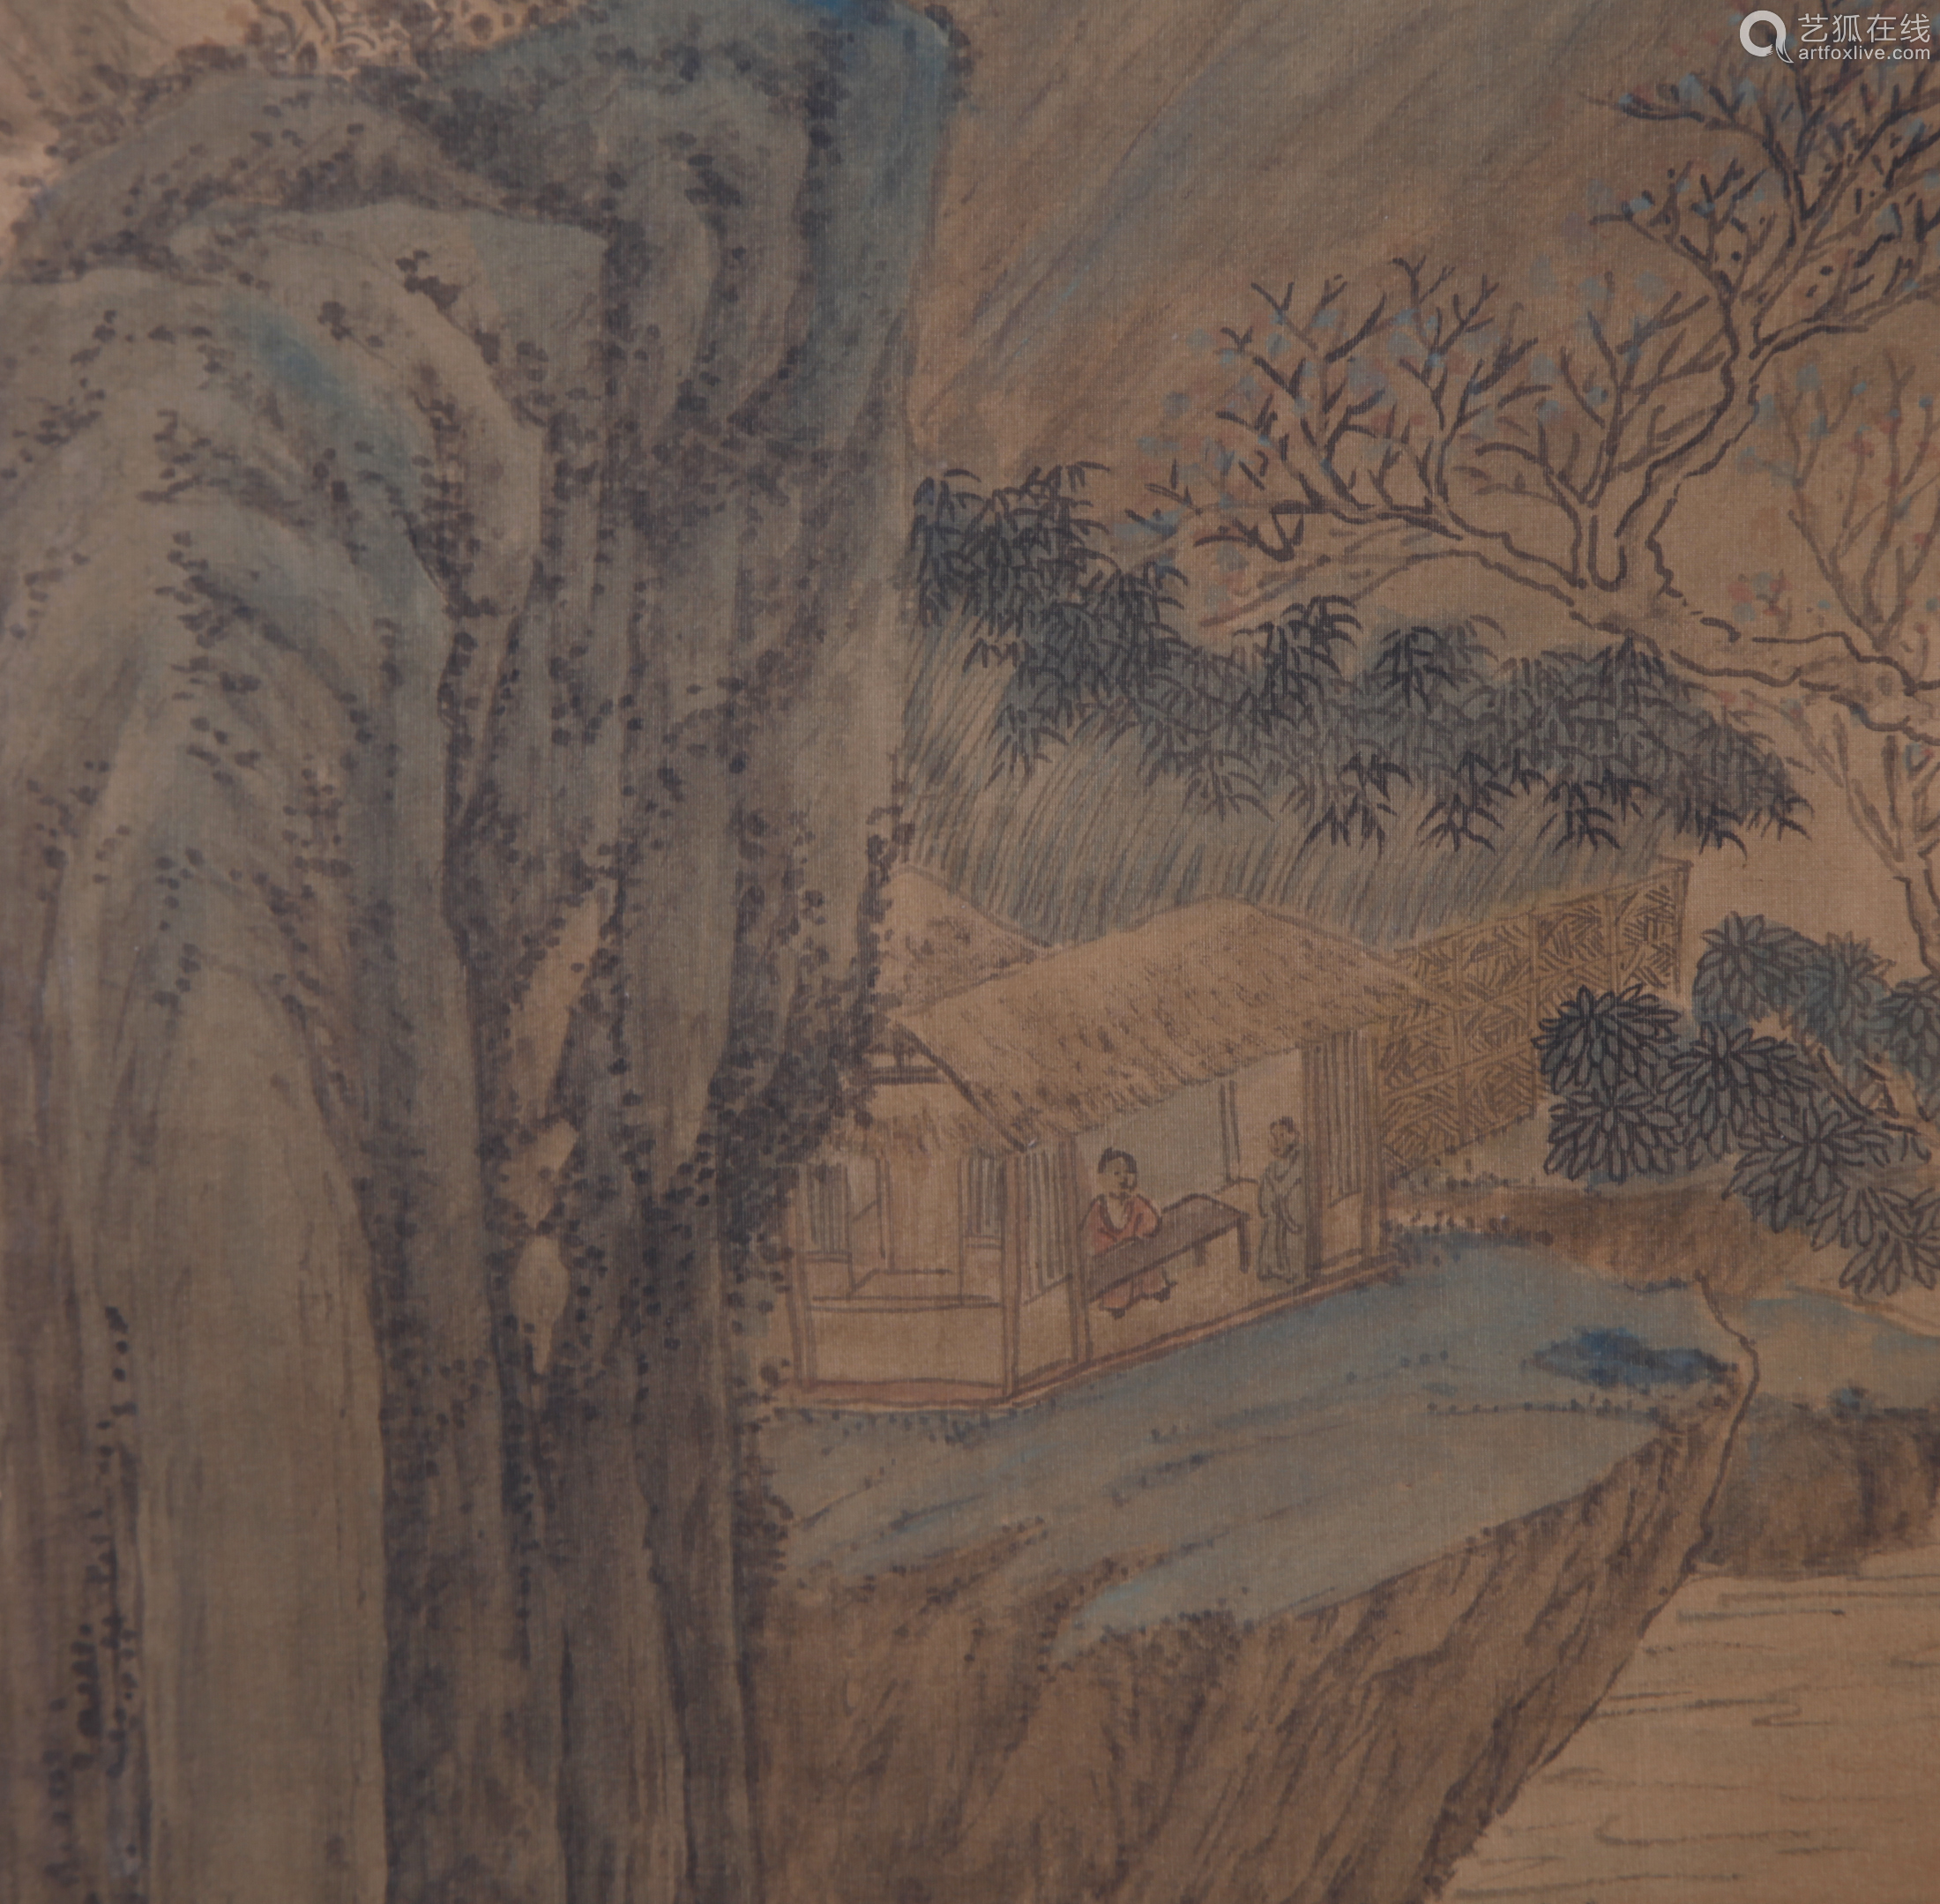 Qiu Ying - Mountain Scenery Shan Shui Painting